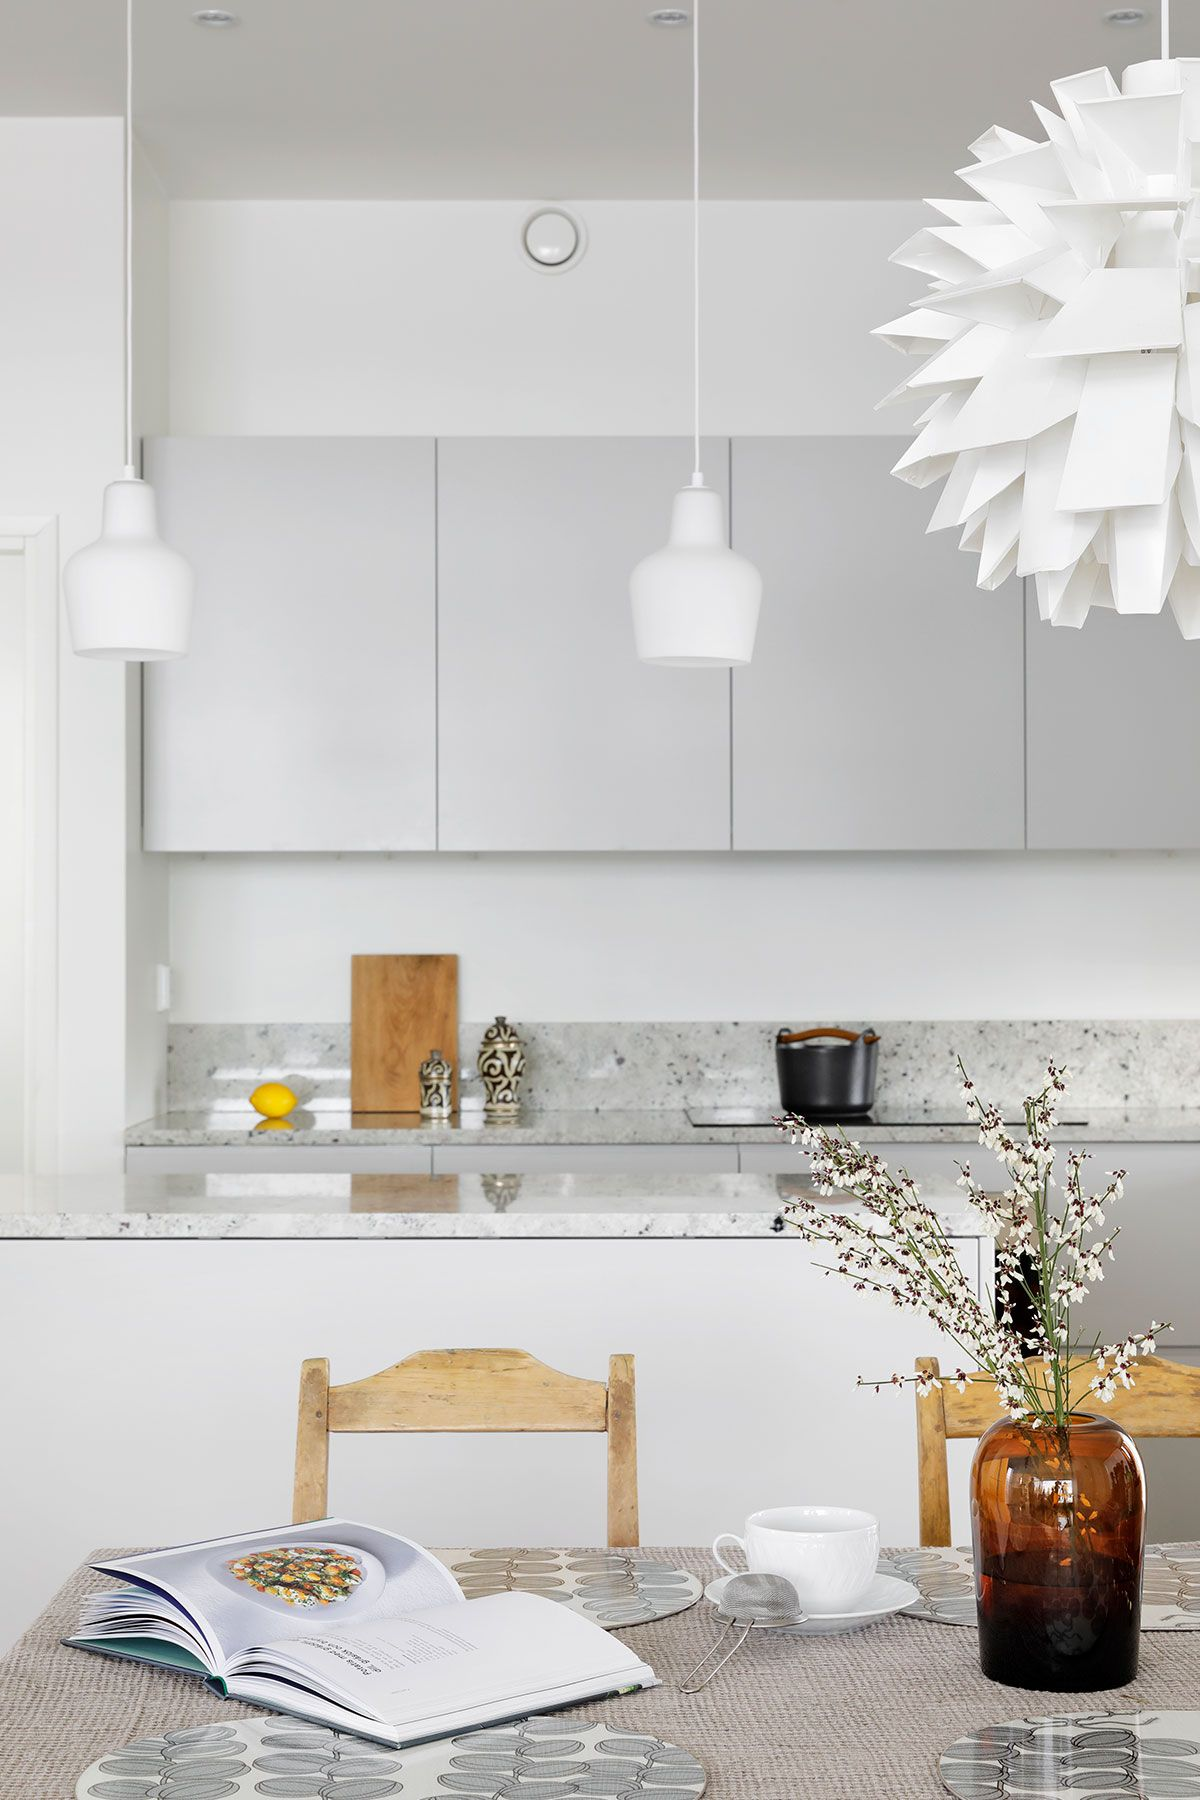 A S Helsingo Kitchens Samso In Feather Grey Our Kitchens Are Designed To Fit Ikea Metod And Faktum Cabinet Frames Kitchen Finishes Interior Decor